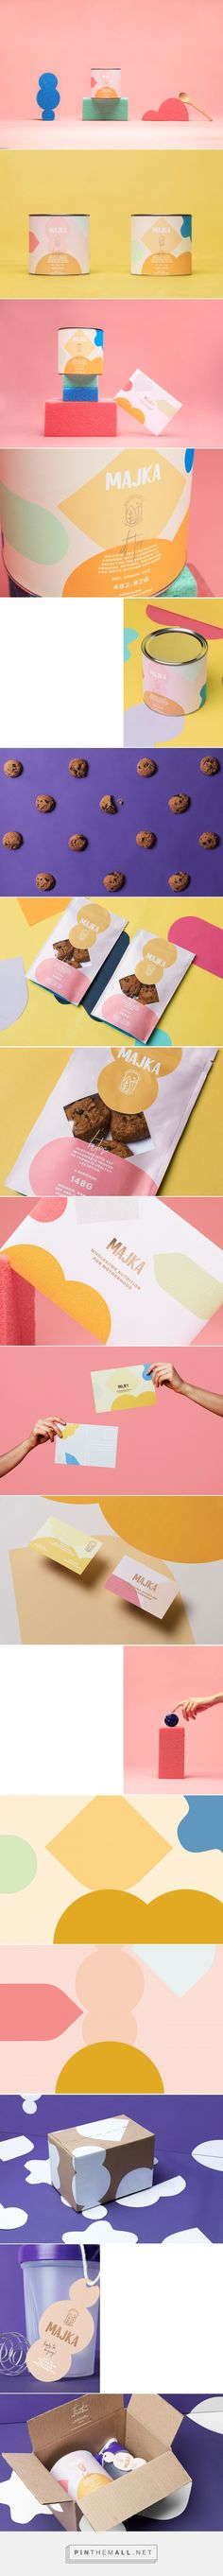 Majka - protein for moms - packaging design by Futura - http://www.packagingoftheworld.com/2017/11/majka.html